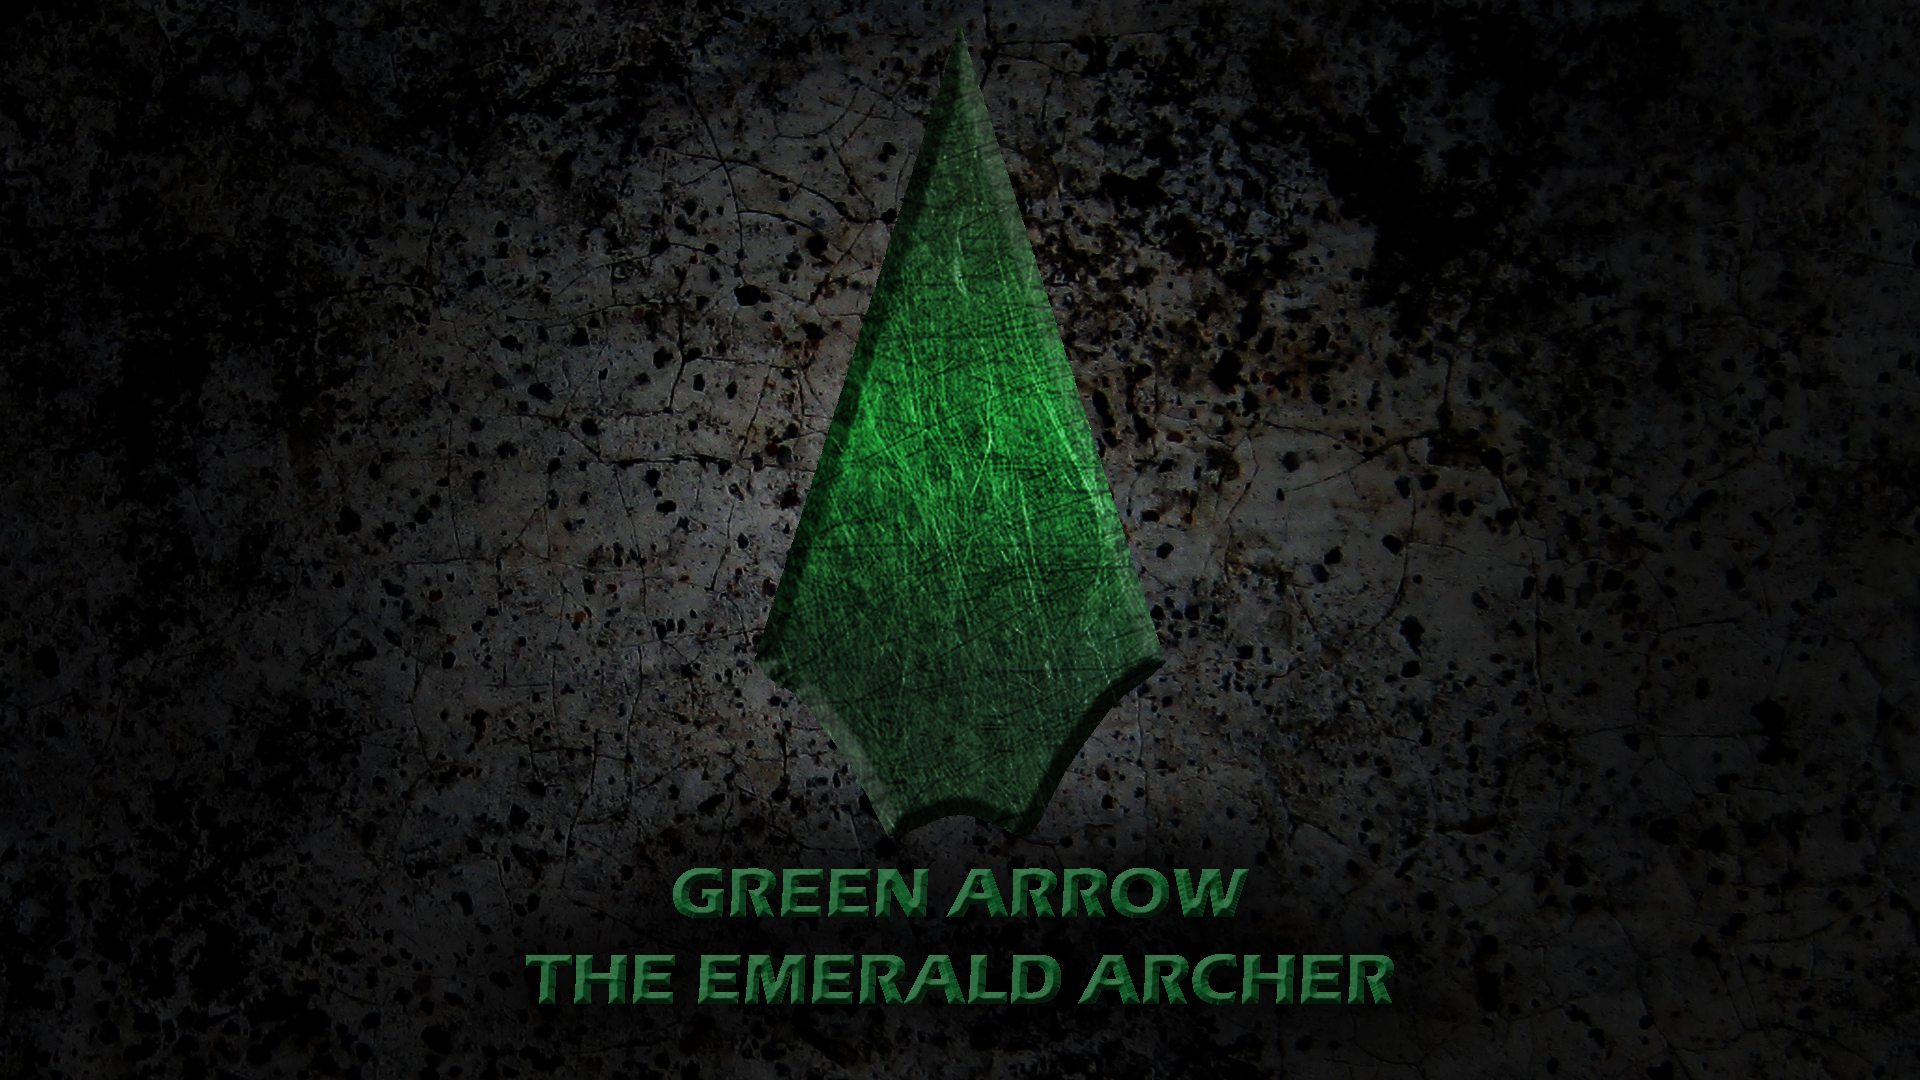 Arrow the emerald archer by epsilon xiii on deviantart arrow the emerald archer by epsilon xiii voltagebd Gallery